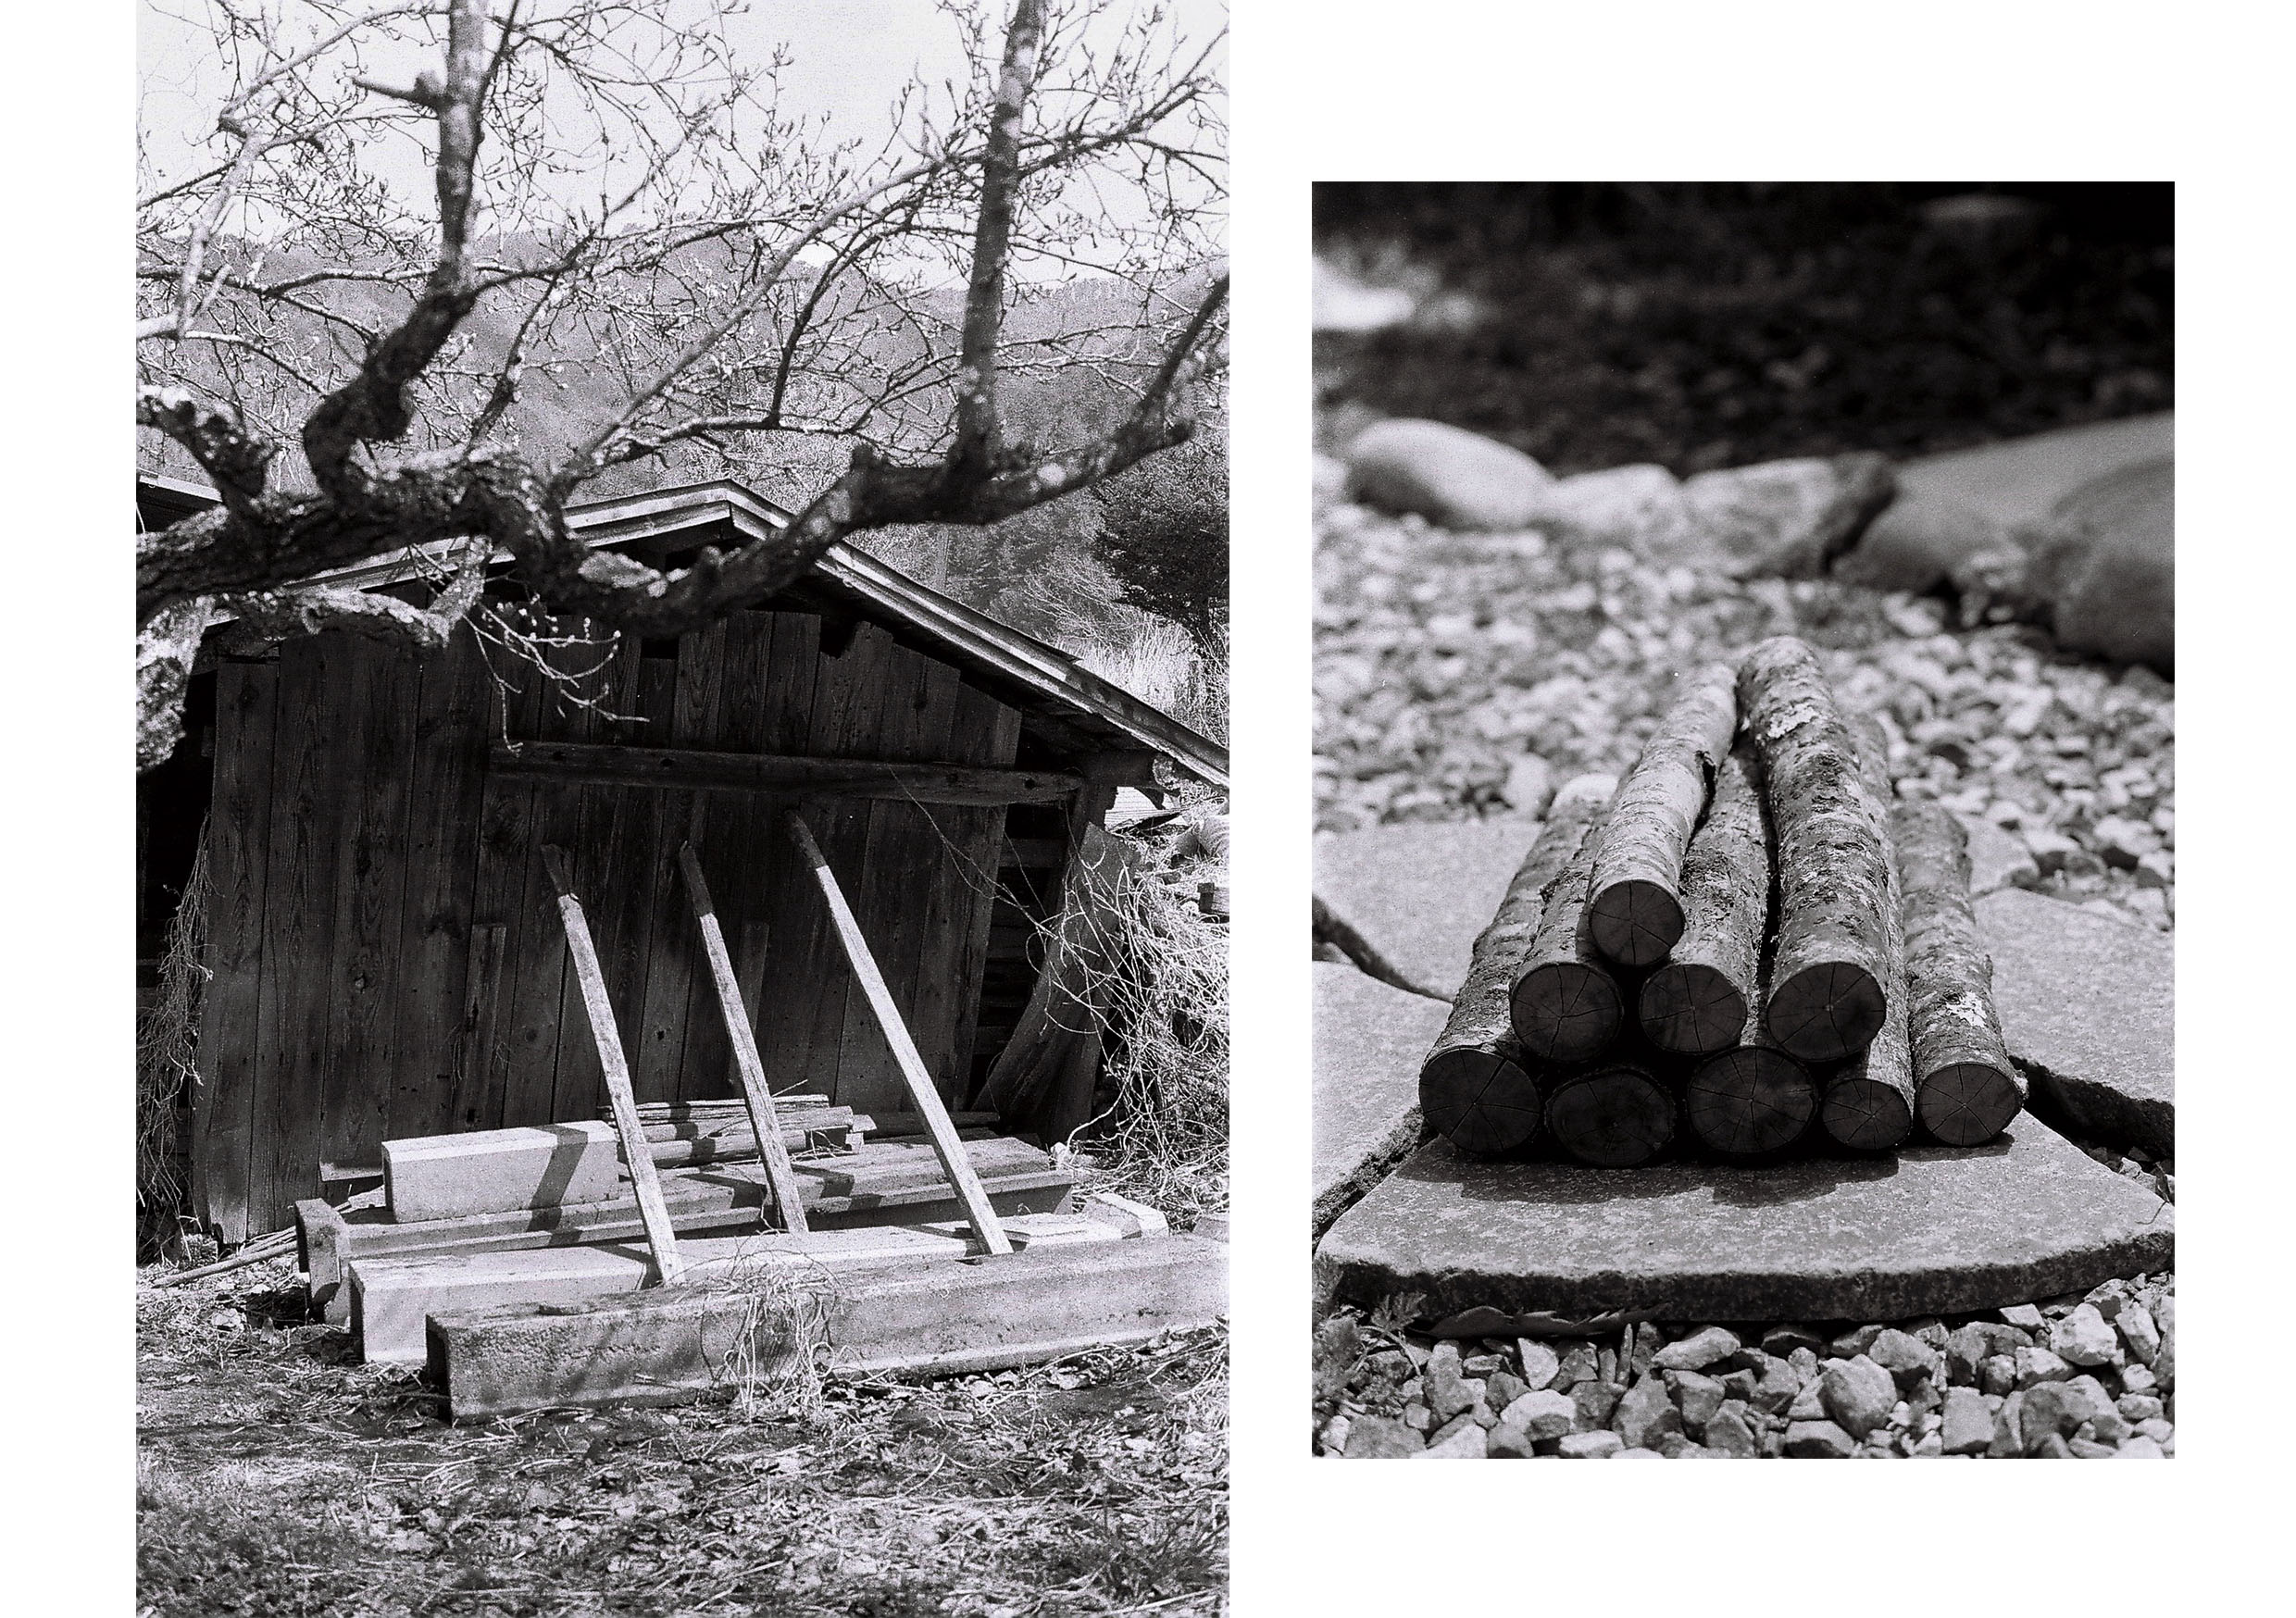 Left: 3 planks of wood supporting the slanting wall of a shed where Daigo does his wood work. Right: A stack of firewood.